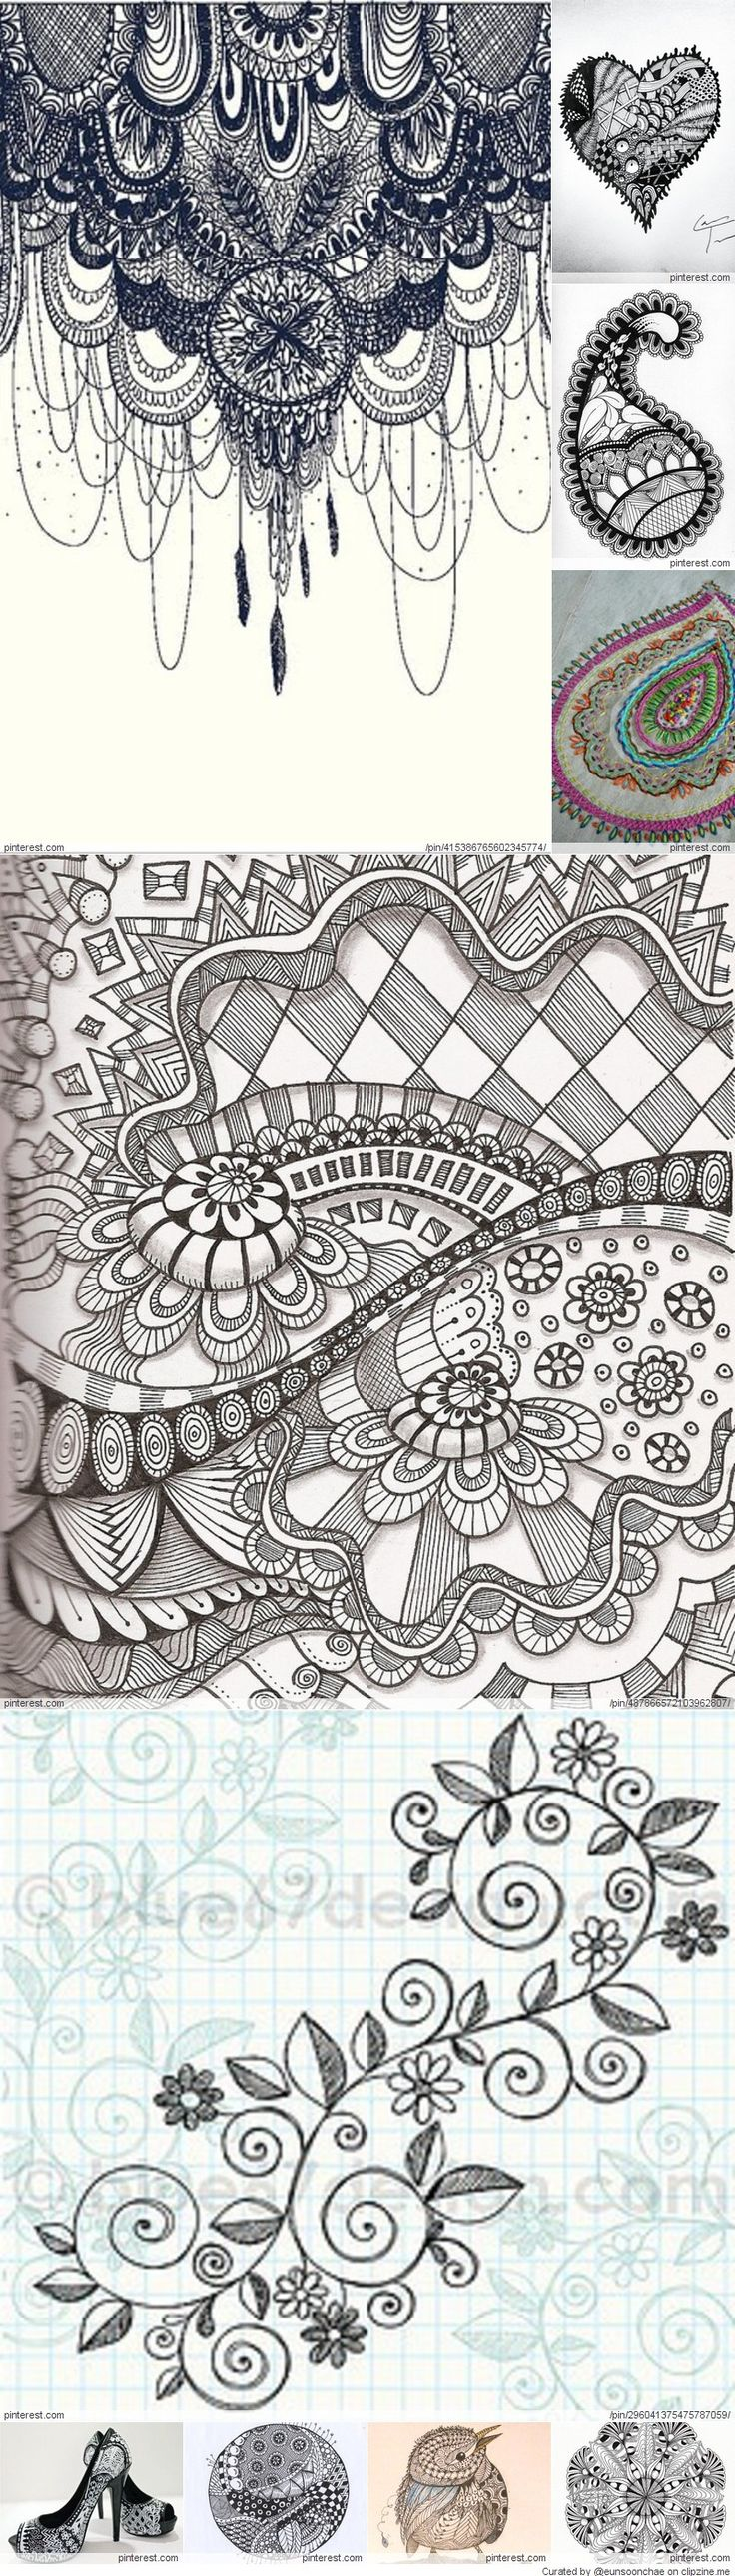 220 Best Doodle It Up Images On Pinterest Watercolor Paintings Origami Dog Diagram Group Picture Image By Tag Keywordpictures Zentangle Designs